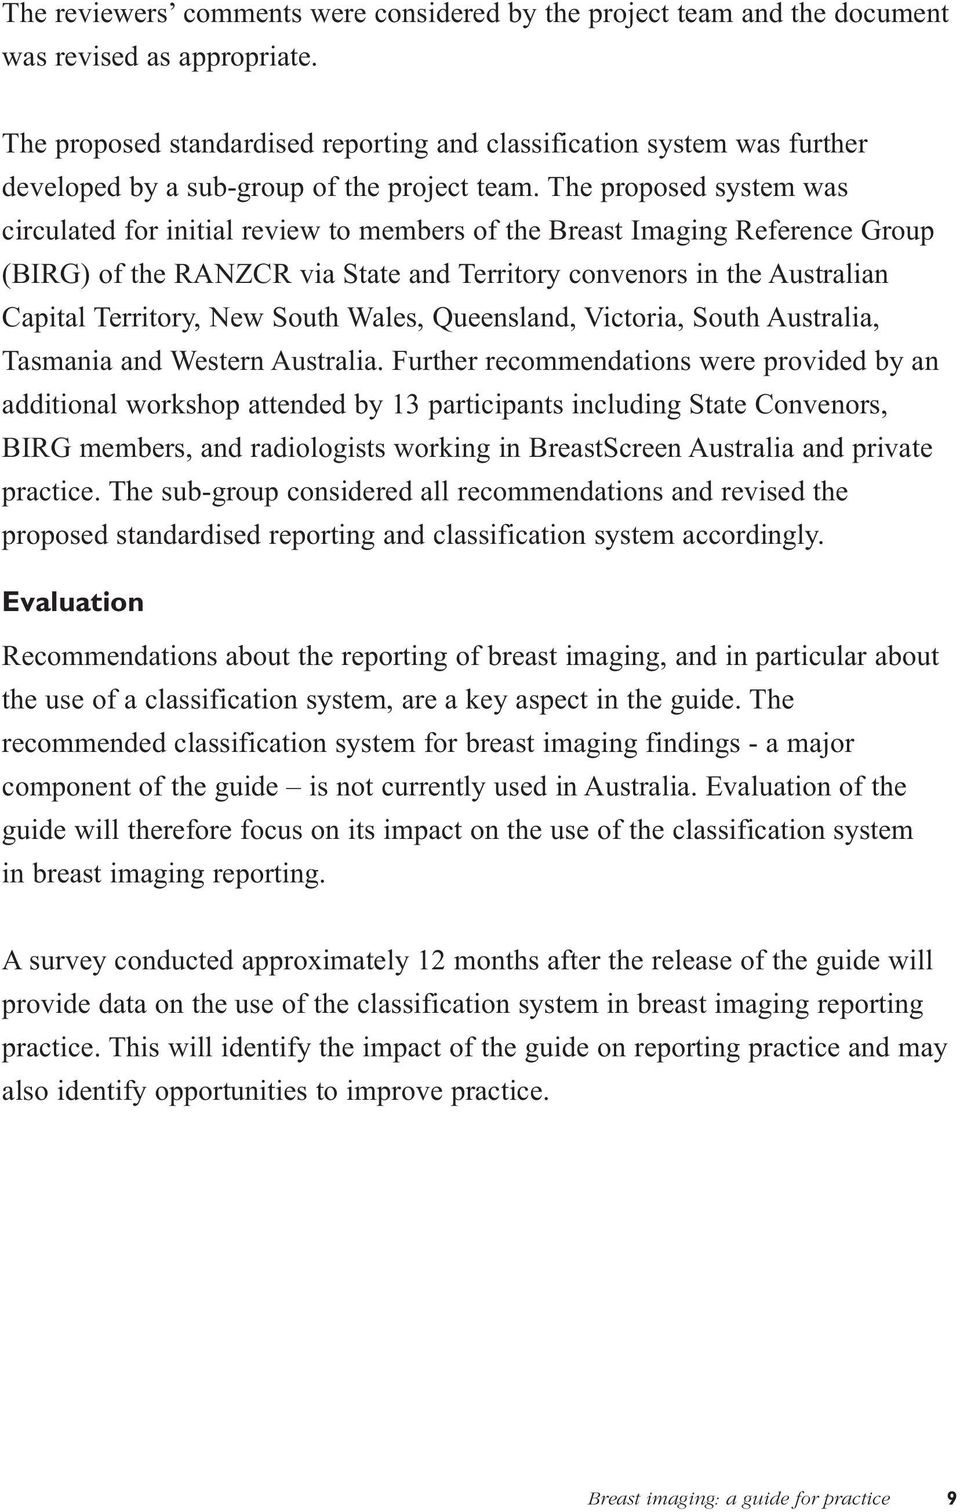 The proposed system was circulated for initial review to members of the Breast Imaging Reference Group (BIRG) of the RANZCR via State and Territory convenors in the Australian Capital Territory, New